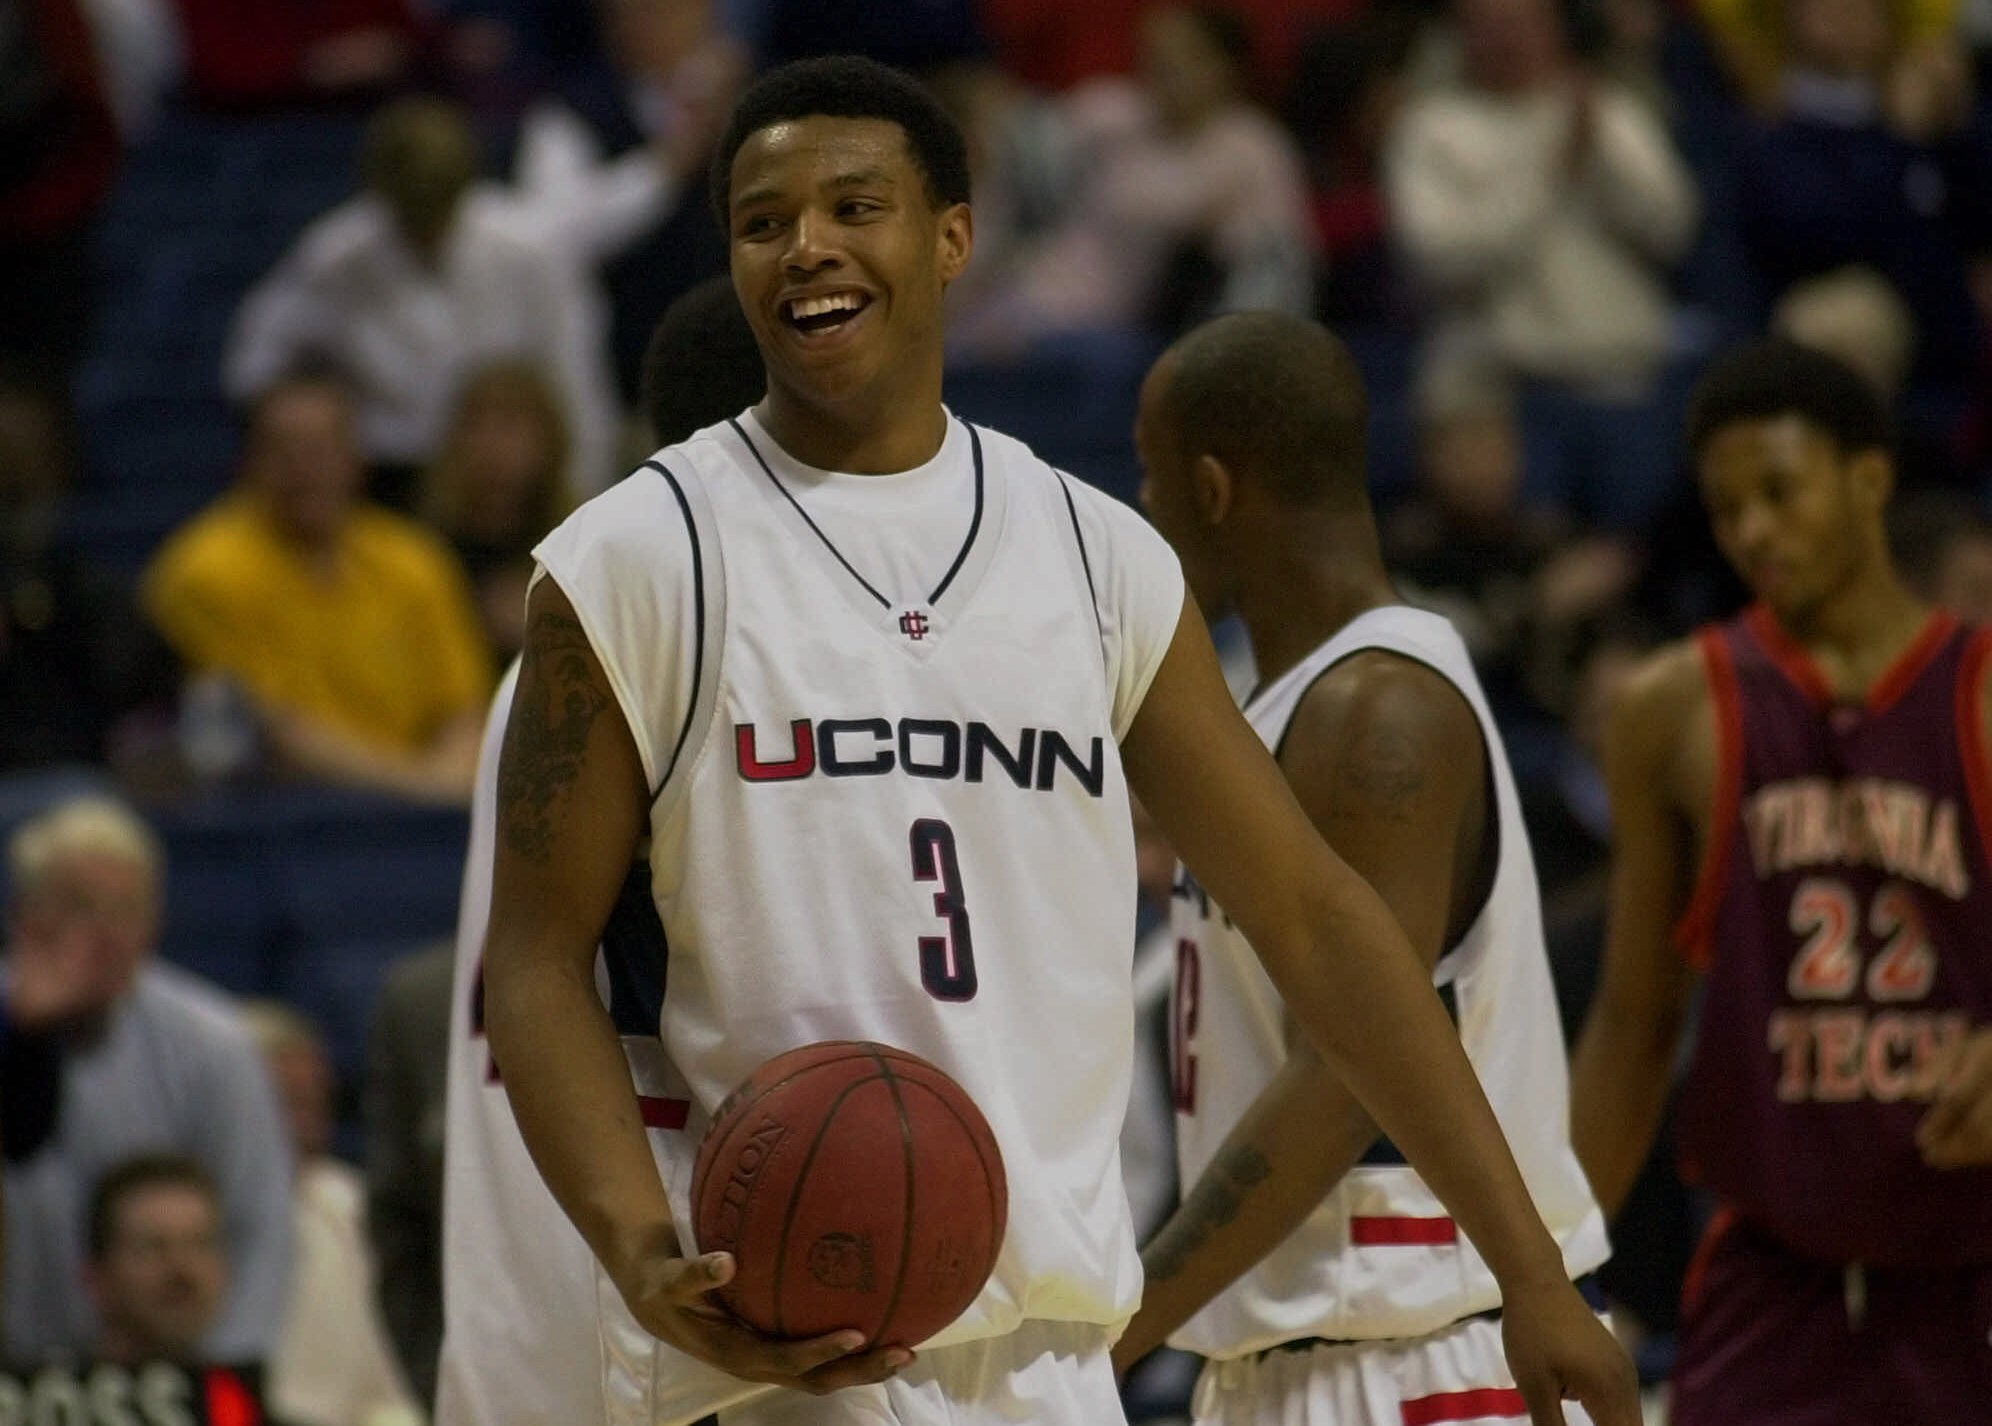 Former UConn Forward Caron Butler To Be Added To Huskies Honor